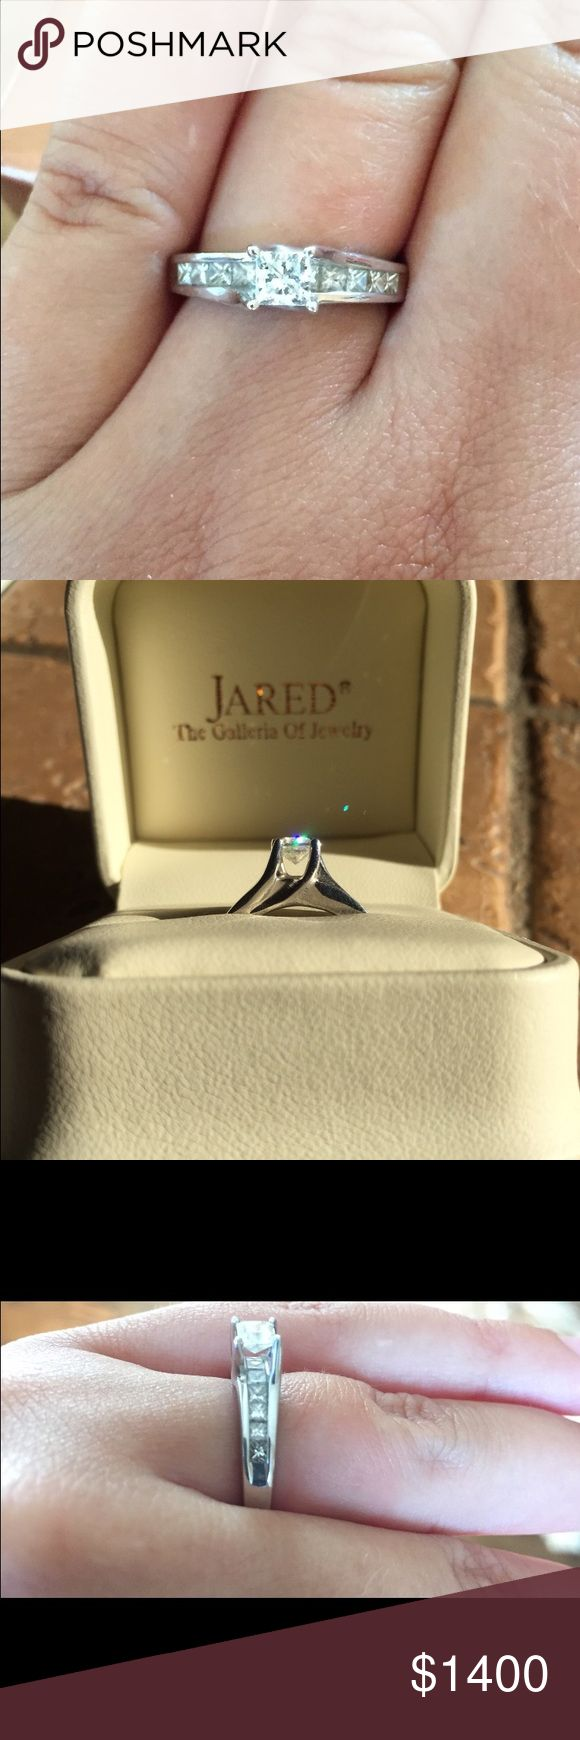 Diamond engagement ring GREAT CONDITION, only worn for a few weeks! Purchased from Jared for $2900 originally. 1.03 total weight, 14k white gold! Will answer any questions you have! Ring is a size 6! Jewelry Rings